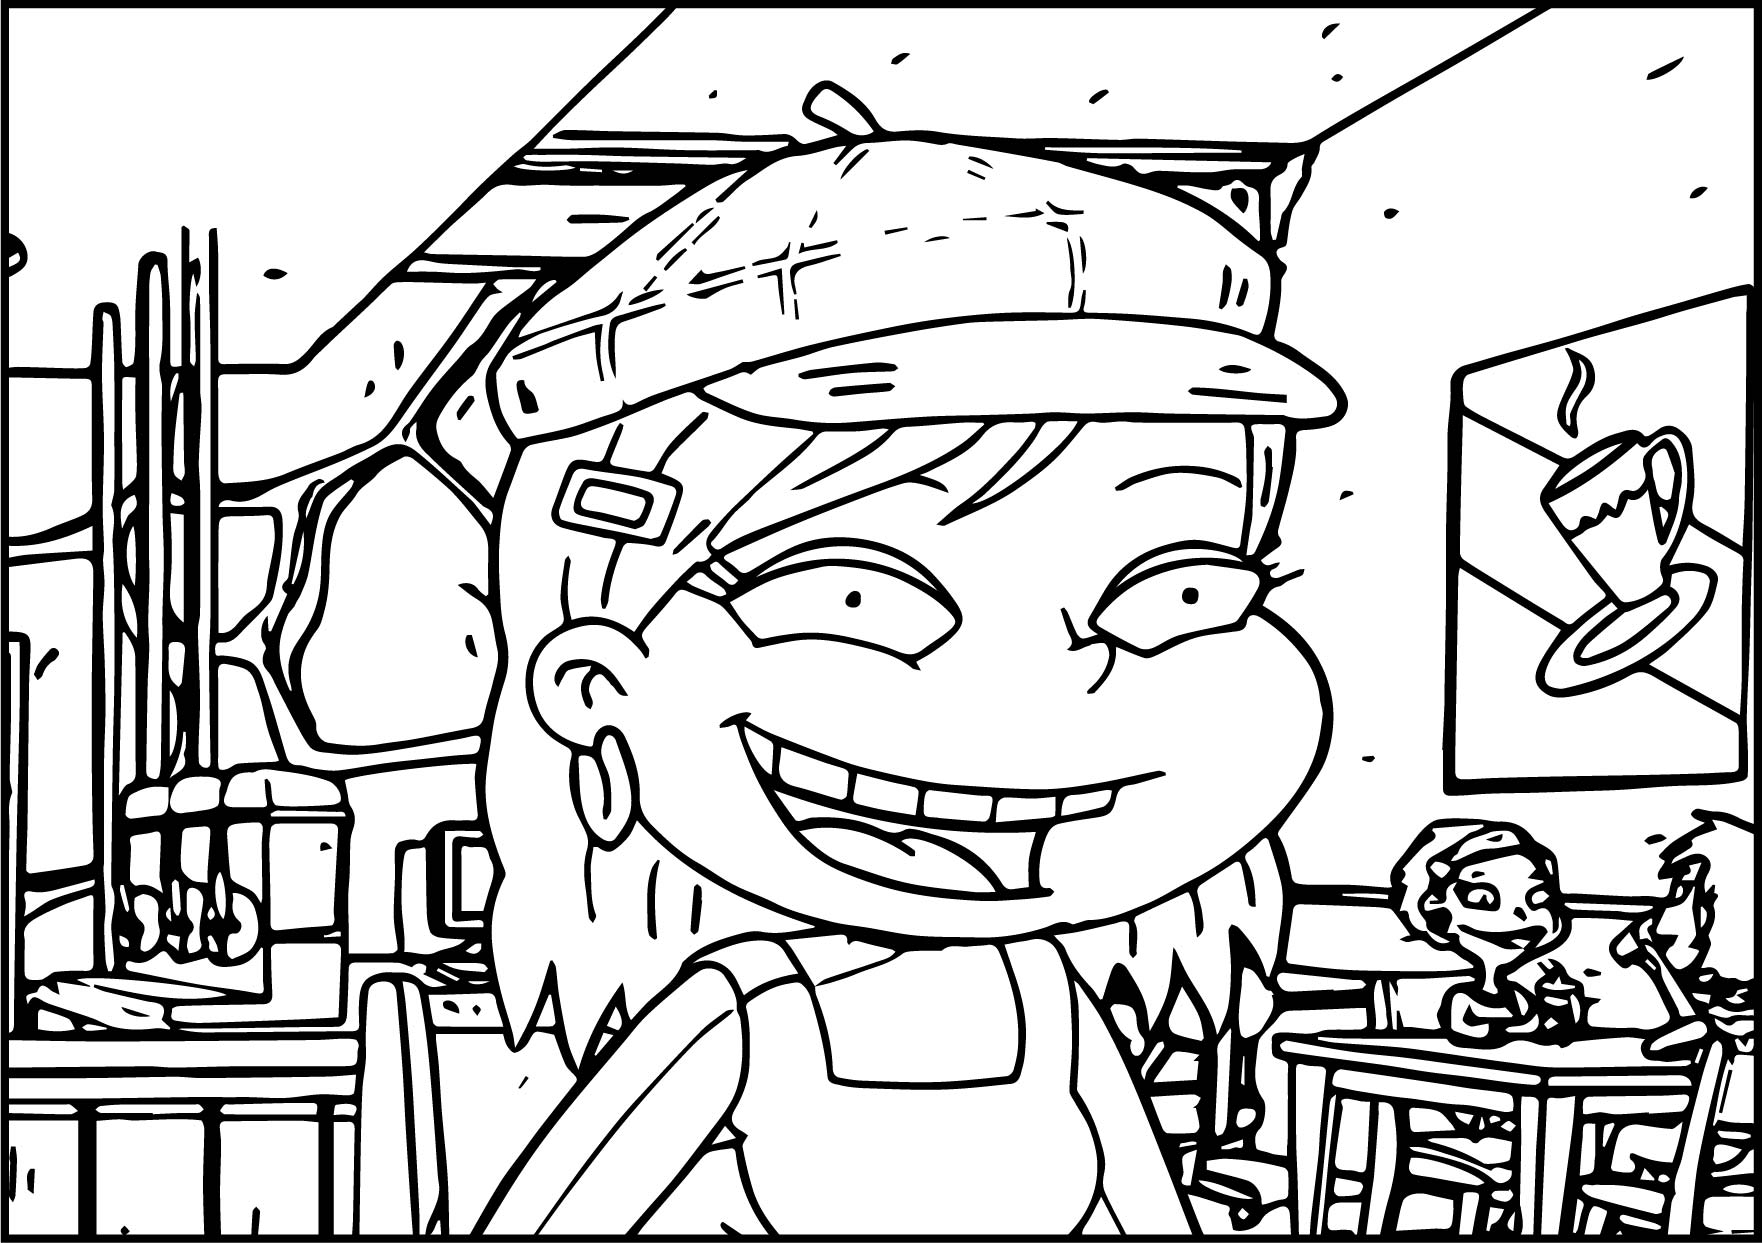 All Grown Up Angelica Cafe Coloring Page | Wecoloringpage.com